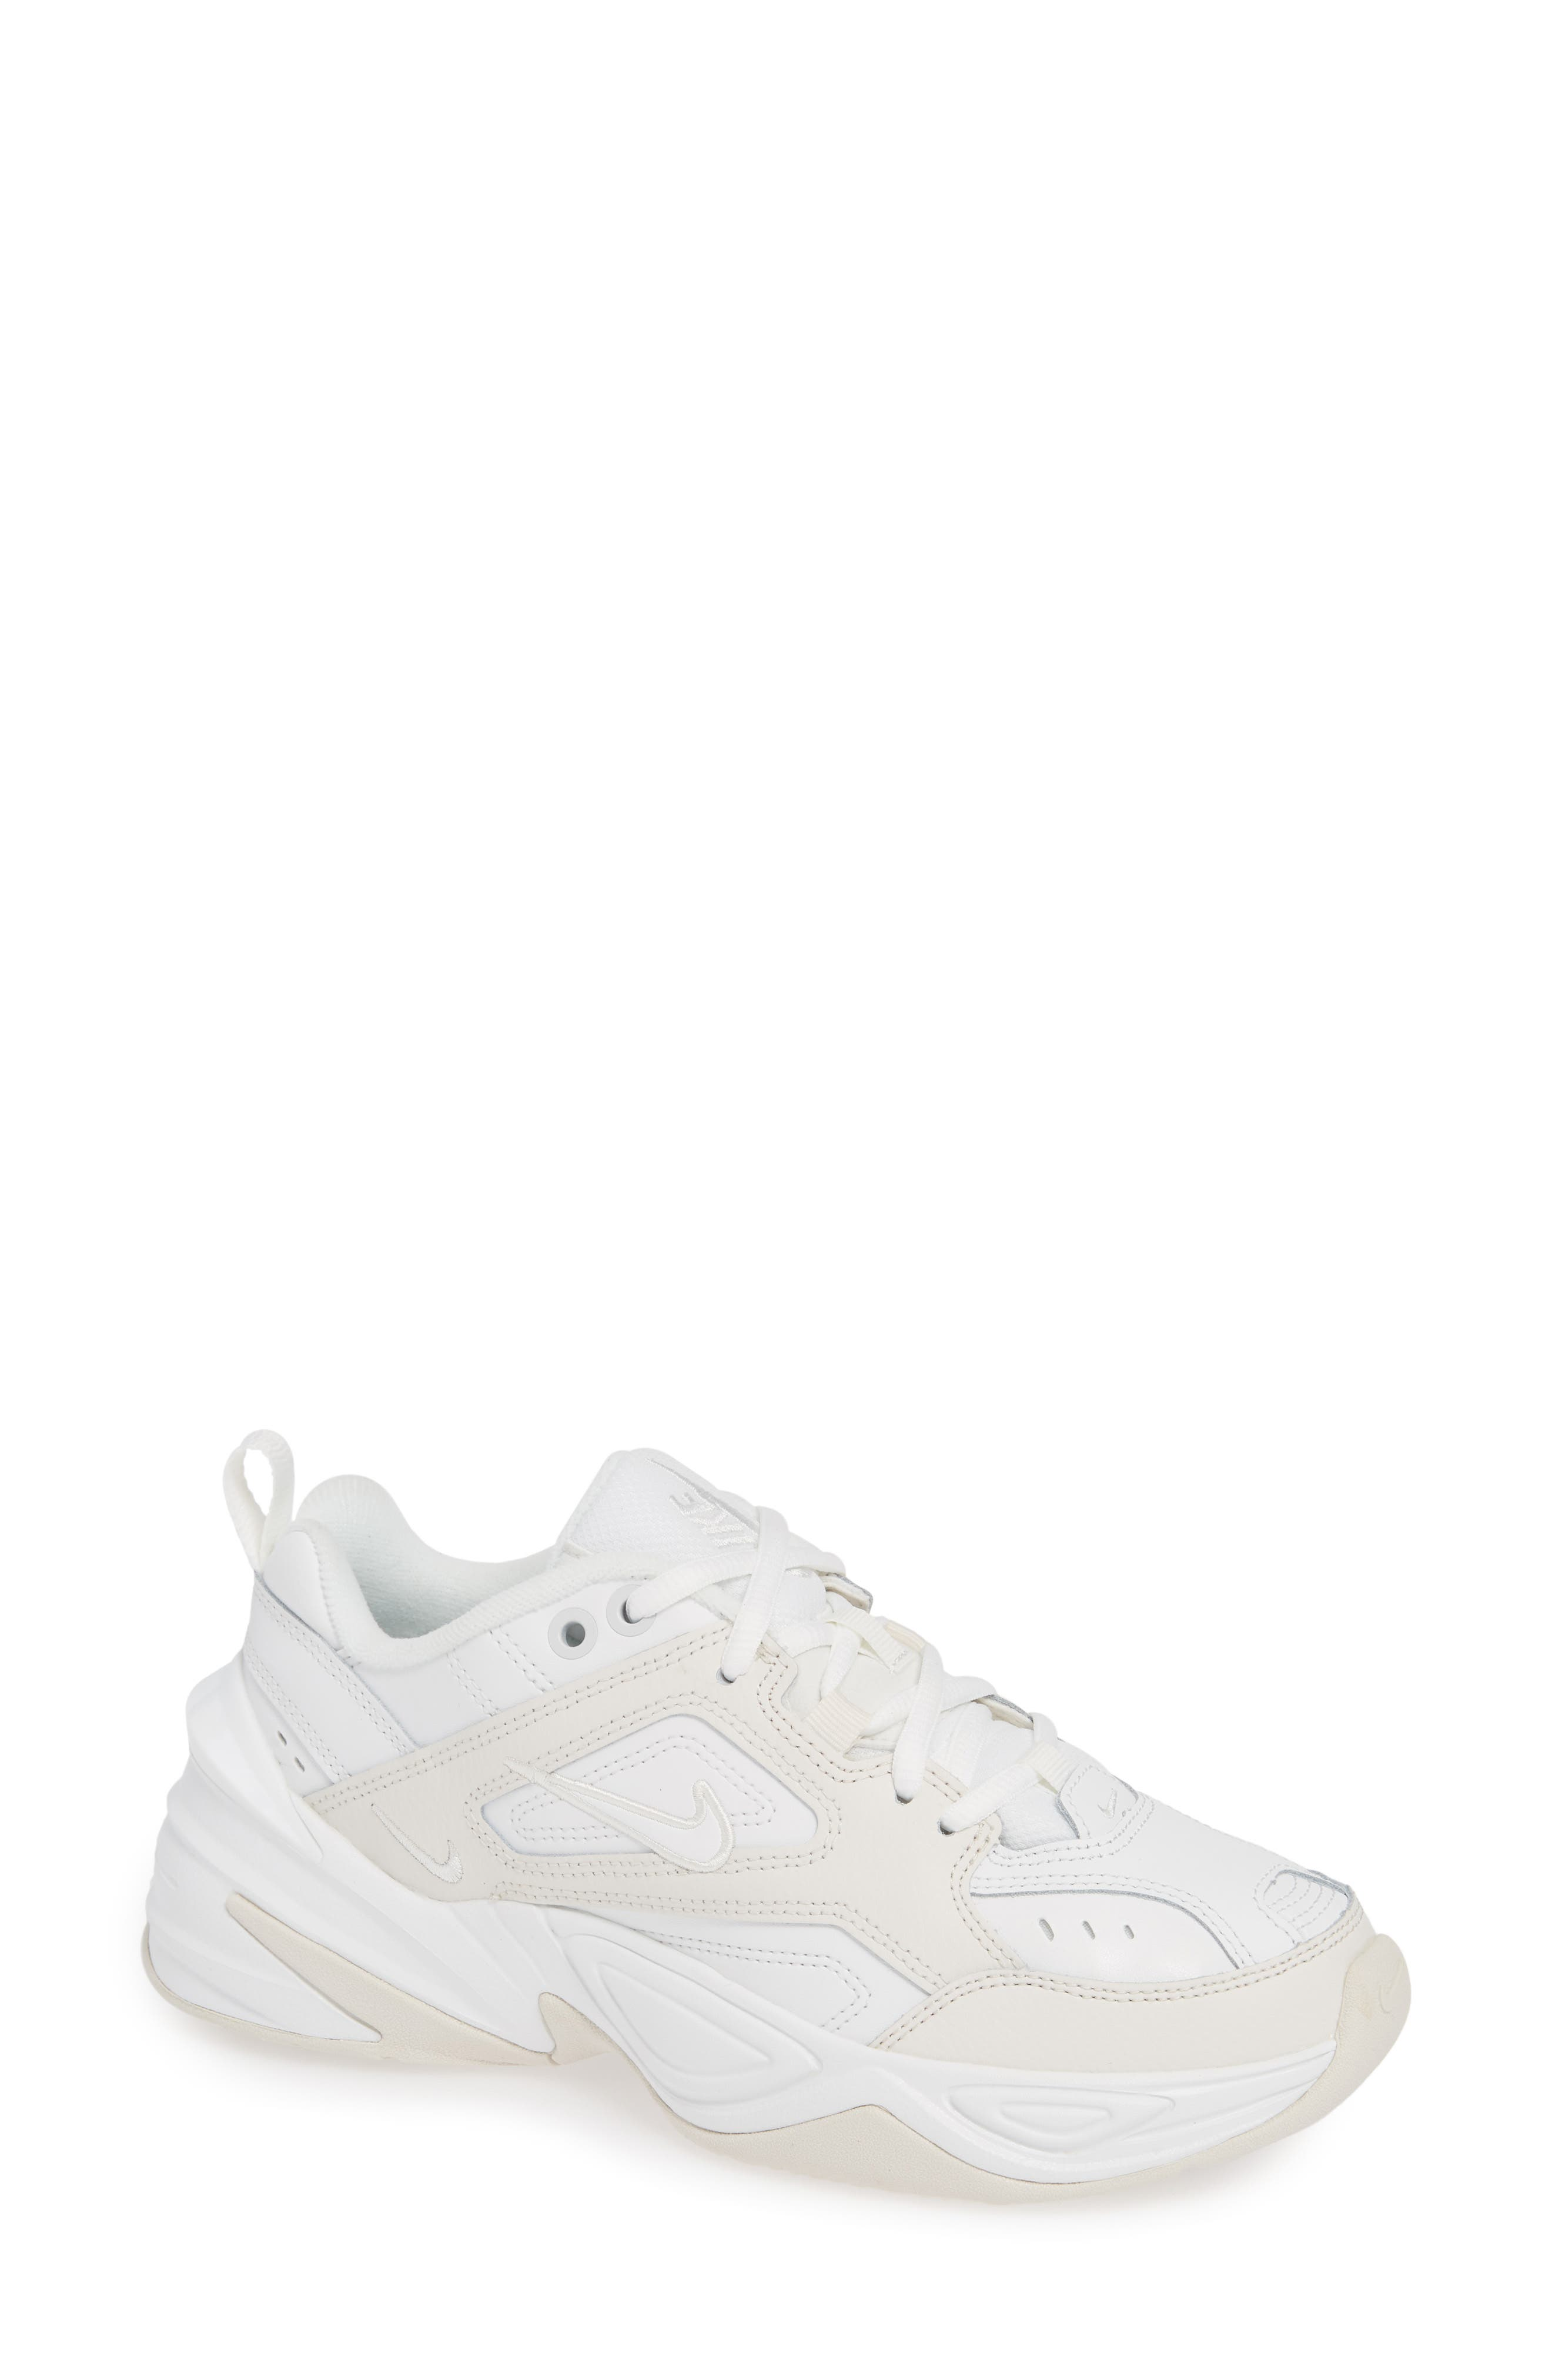 M2K Tekno Sneaker,                         Main,                         color, WHITE